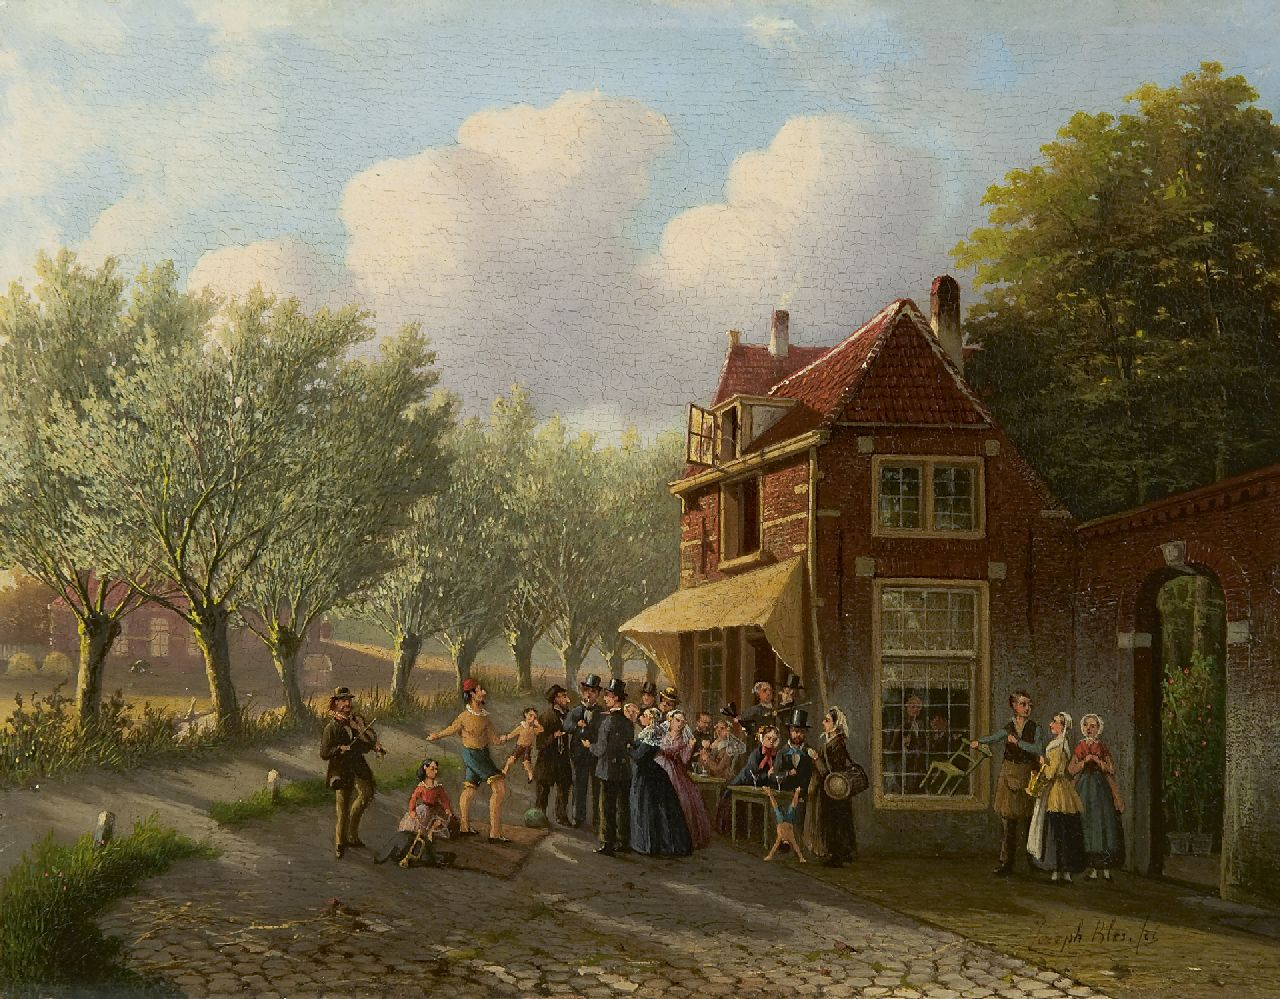 Joseph Bles | A magician by a village tavern, oil on panel, 20.6 x 26.2 cm, signed l.r.